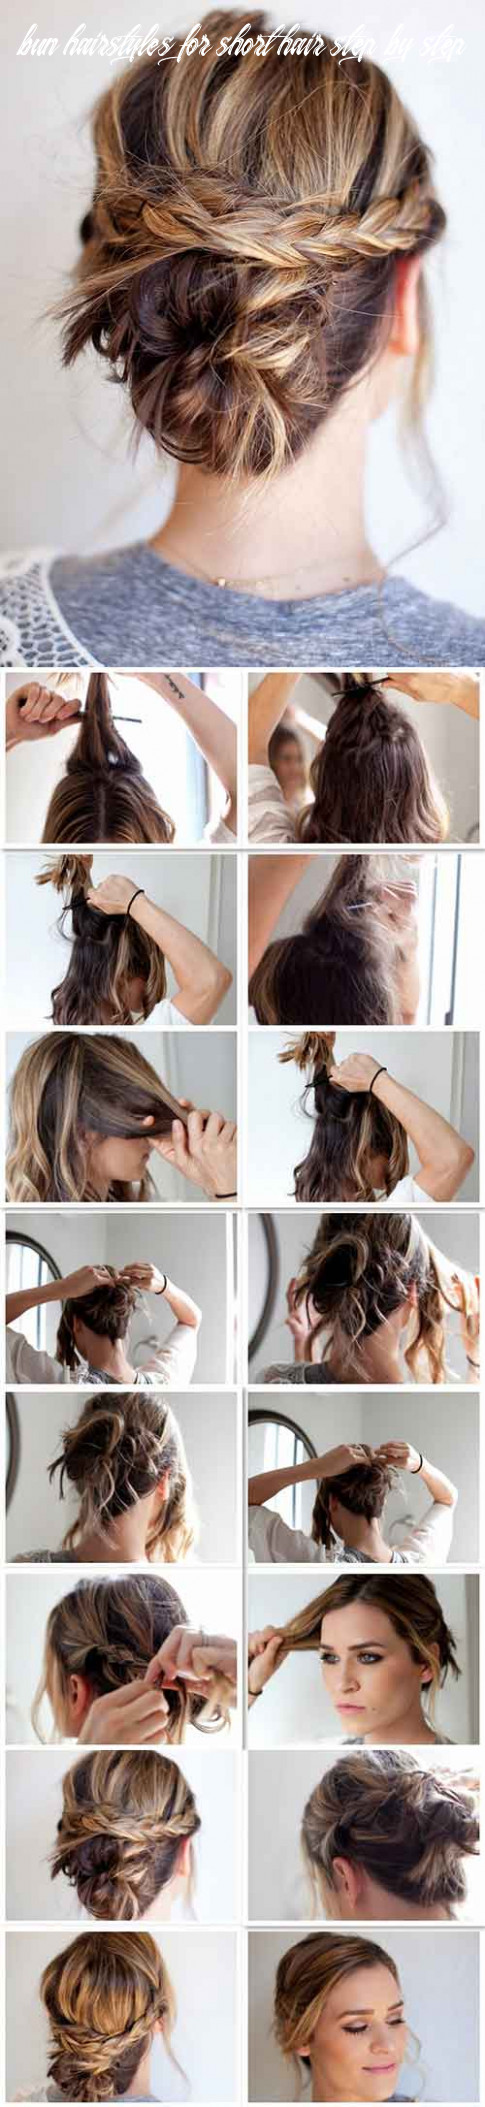 12 incredible diy short hairstyles a step by step guide bun hairstyles for short hair step by step